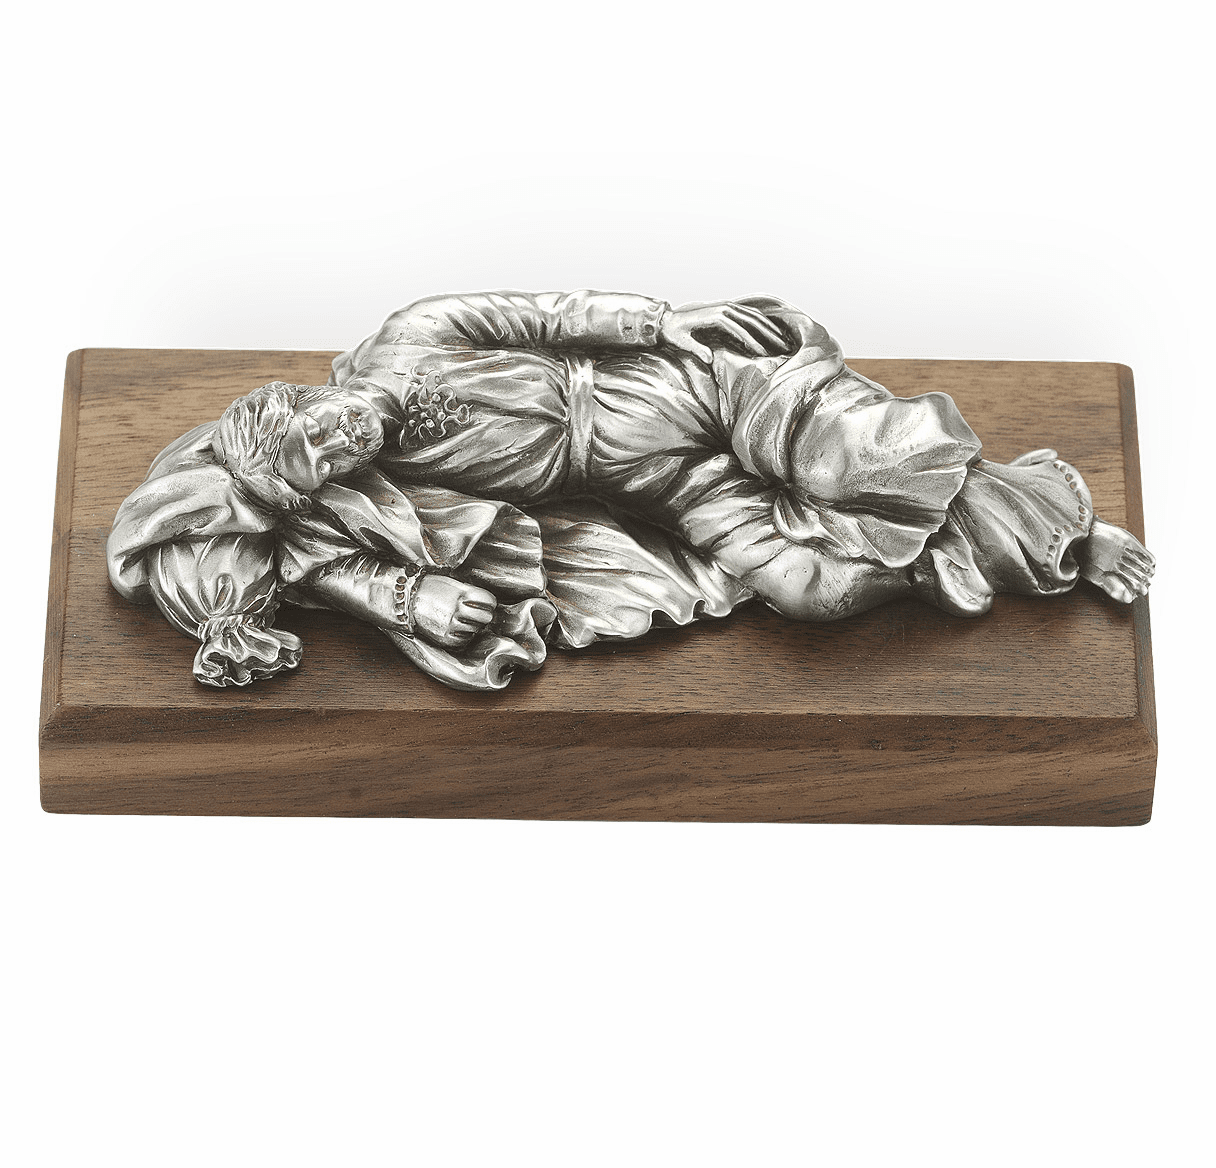 St Joseph Sleeping Pewter Statue on Gold Tone Base by Hirten